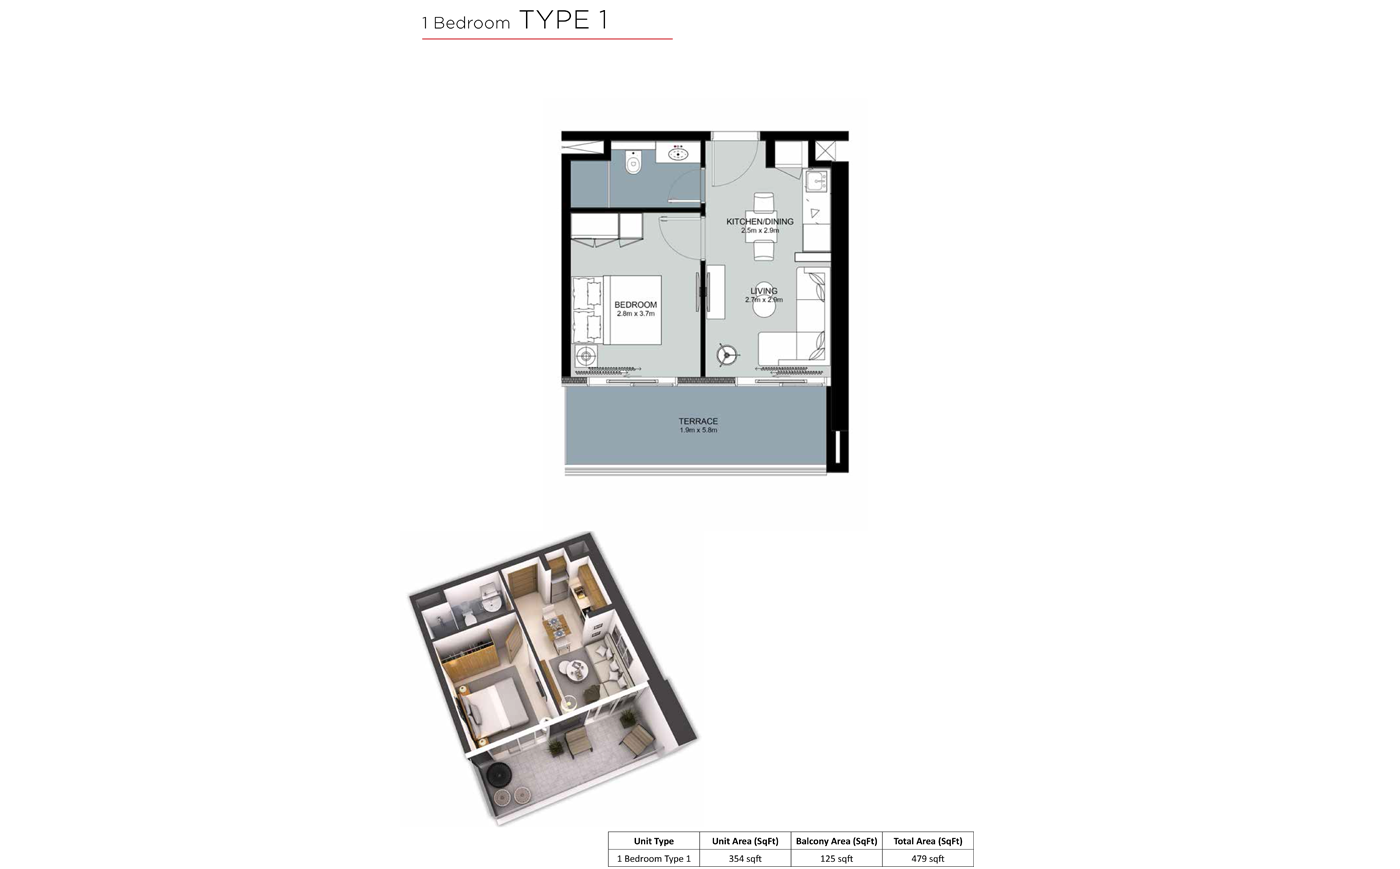 1 Bedroom Type 1 - 479 sq.ft.